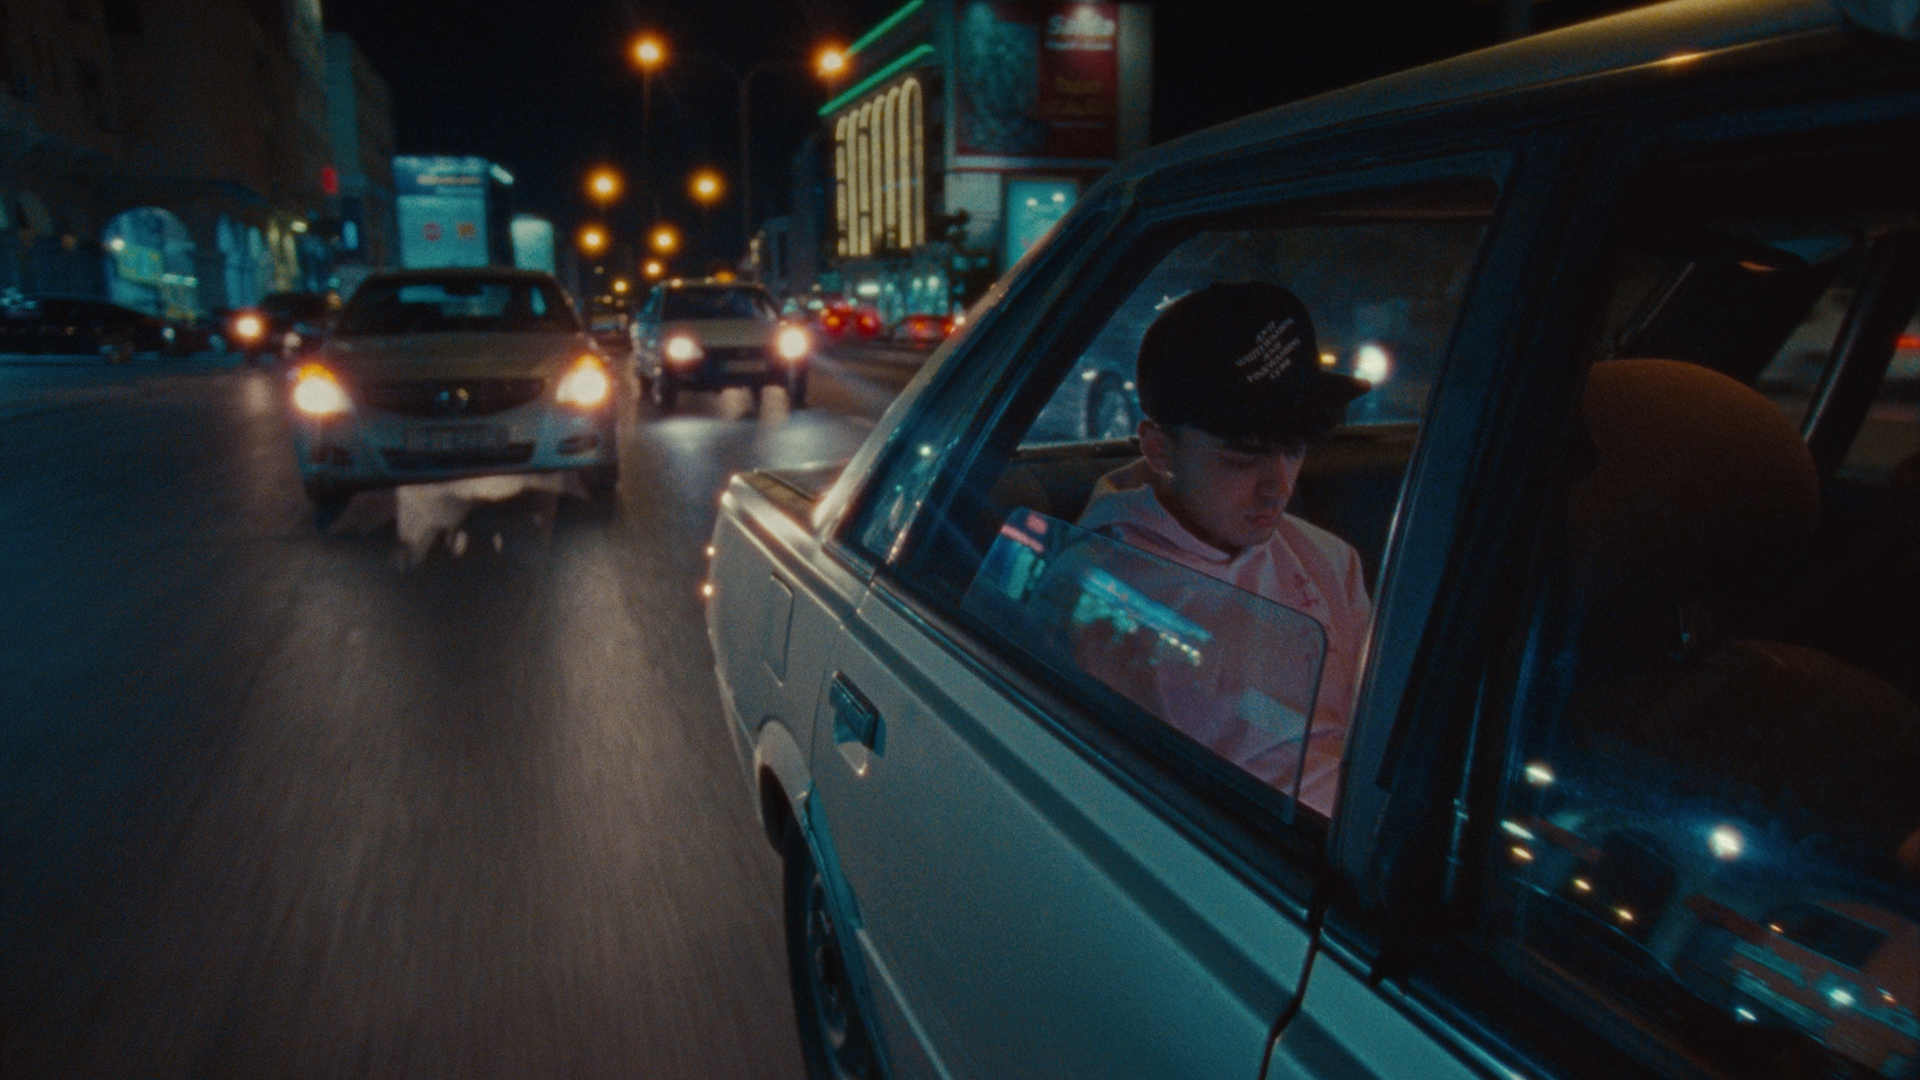 A young man sits in the back of a car staring downwards intently. He wears a black cap and pink hoodie. The car is grey with shimmers of green on the paint form the light outside. The street ooutside is dark, but lit by the headlights of traffic from the cars behind and the streetlights and buildings nearby.